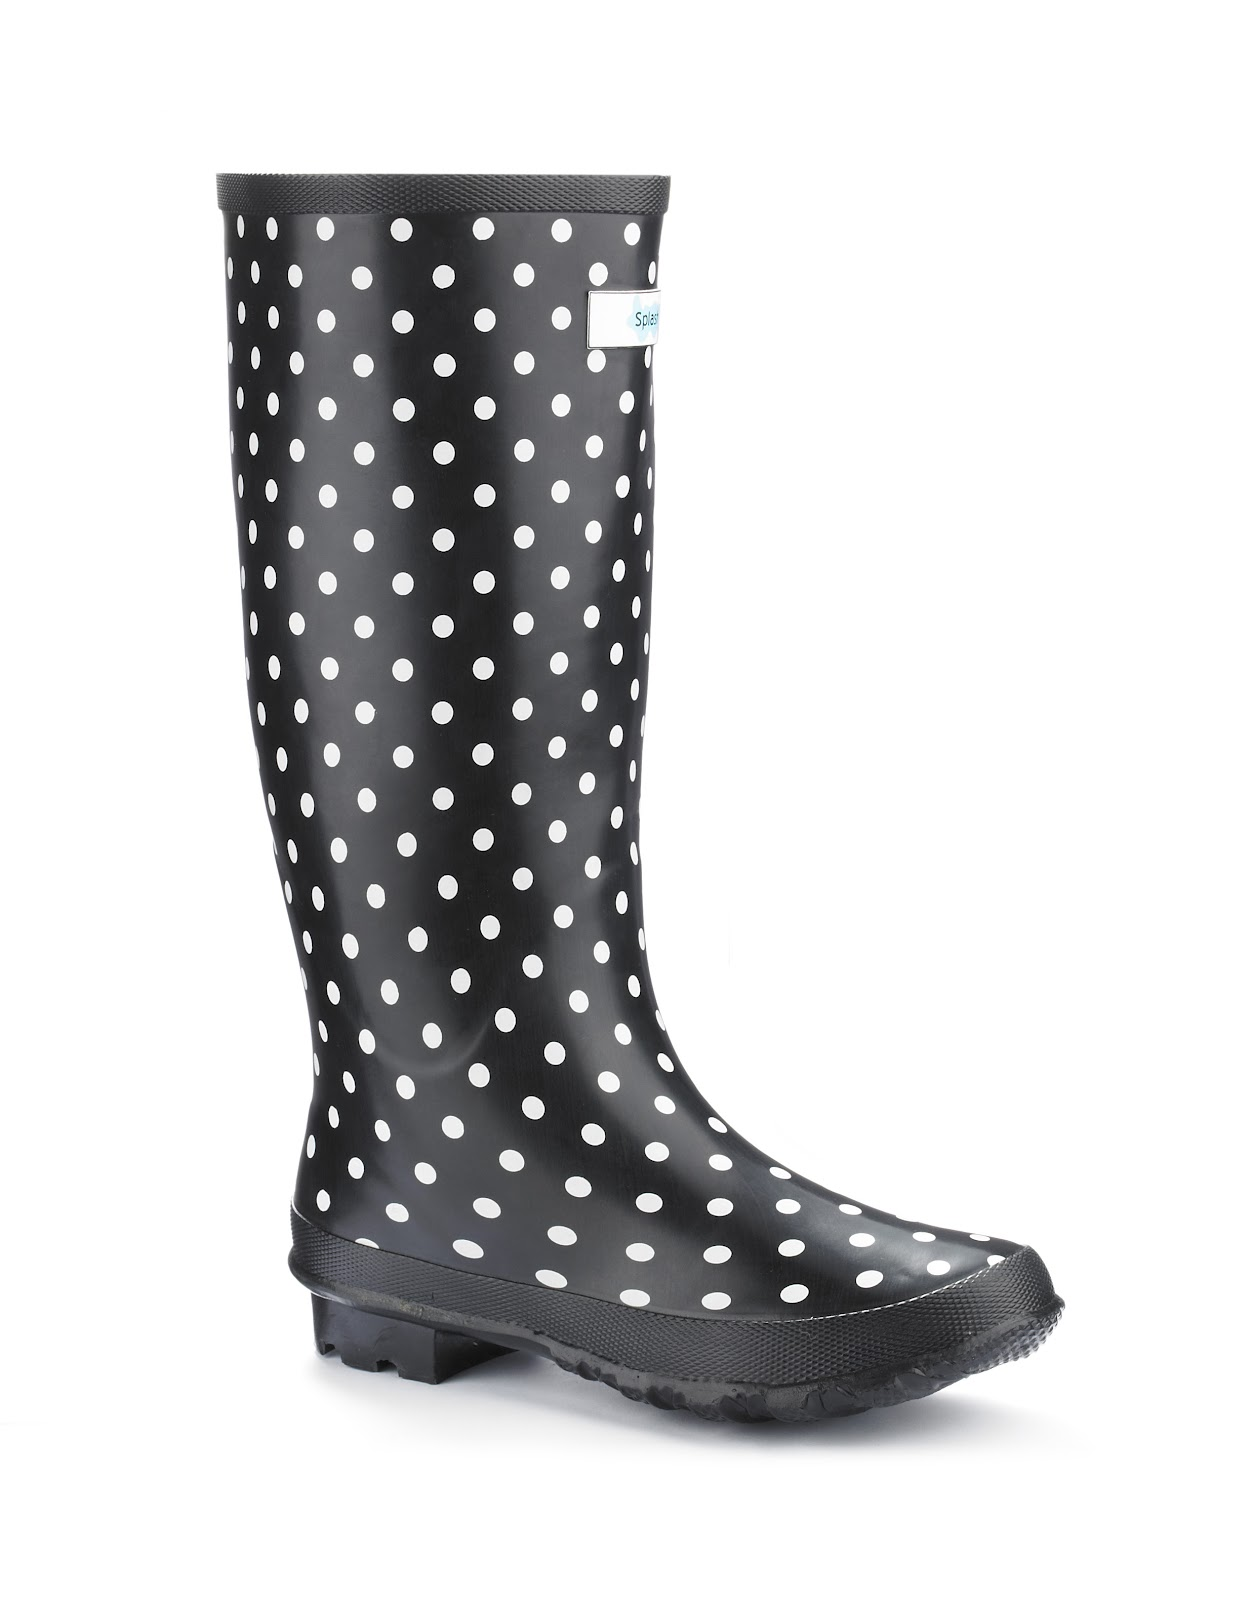 b6bc16f68a1b Wide calf Wellies for women